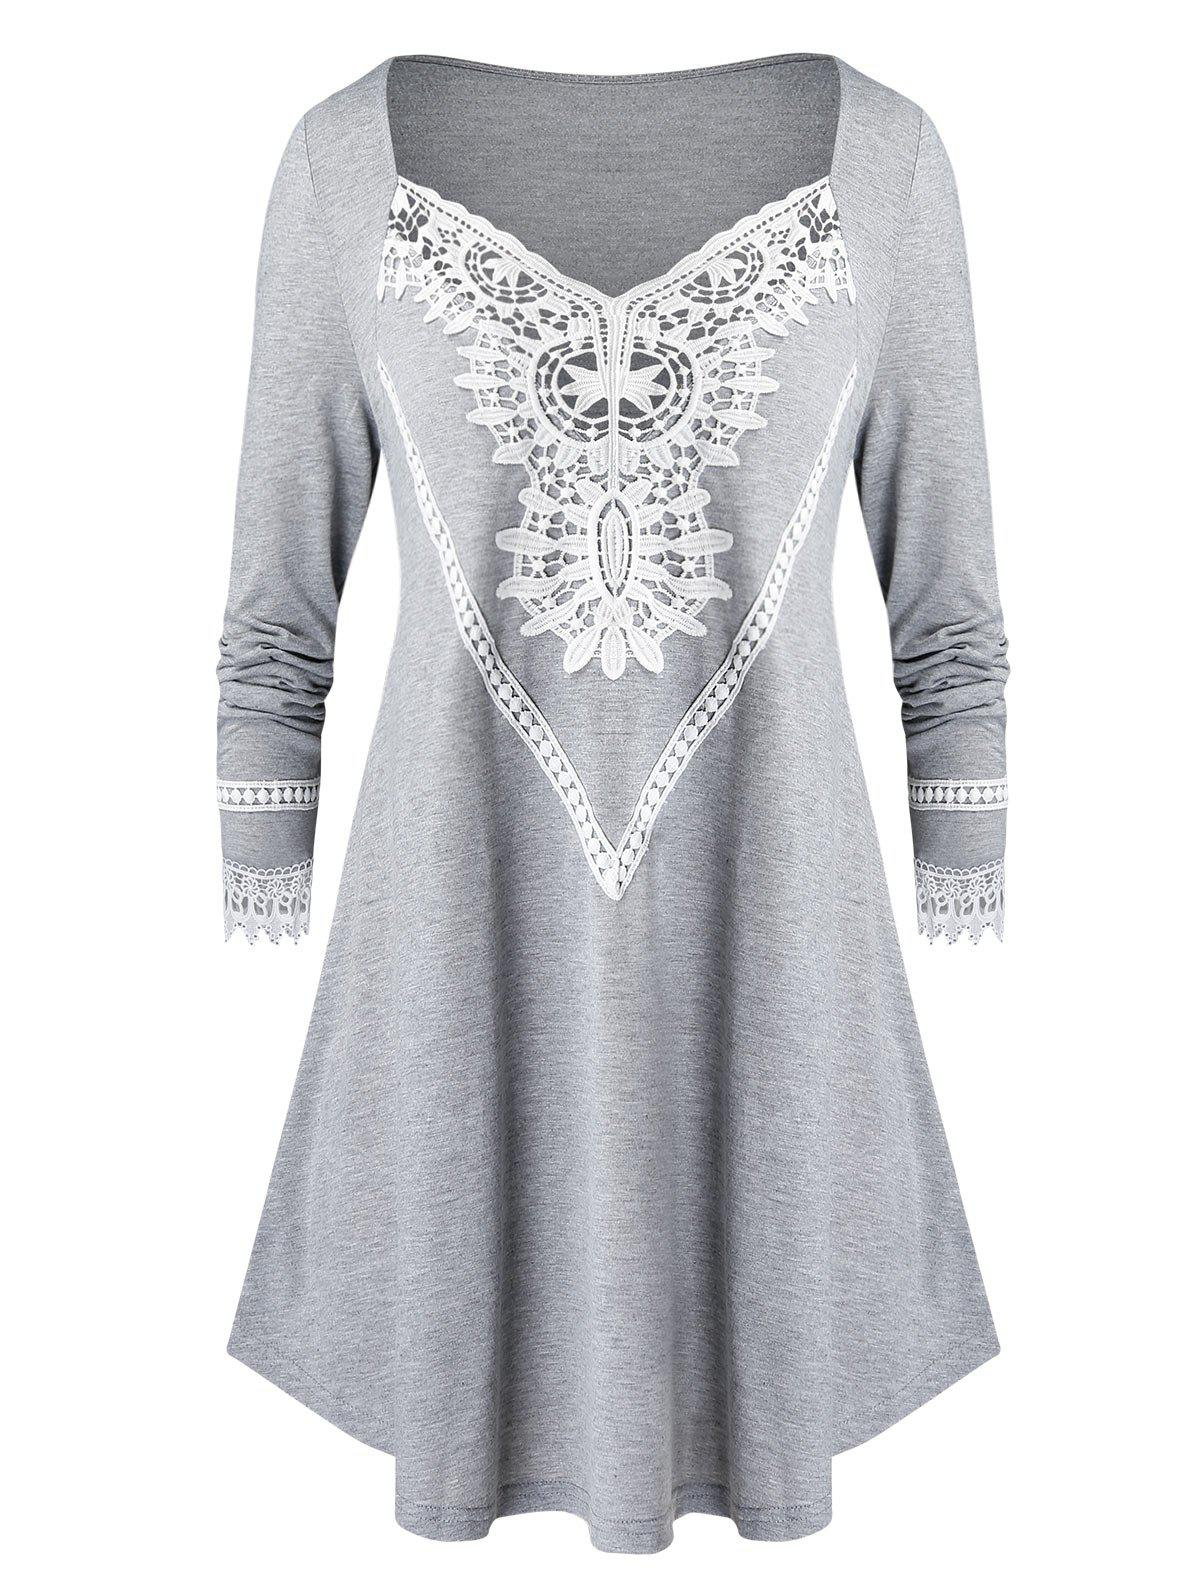 New Plus Size Lace Insert Long Tunic T Shirt